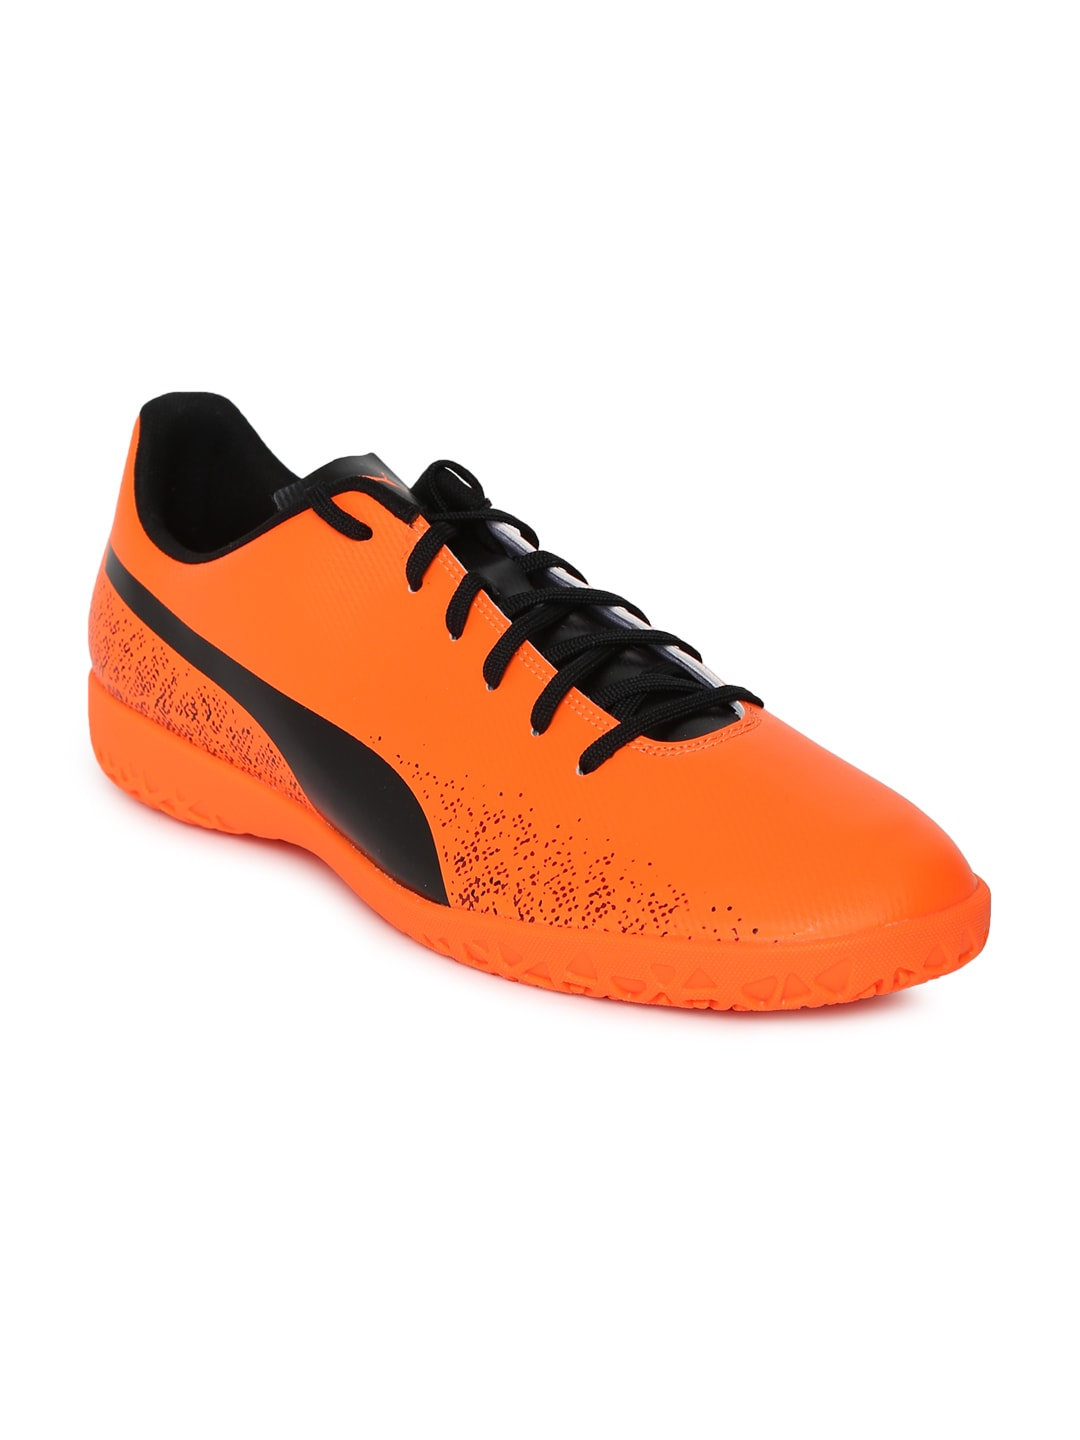 8fb1a446d90 Sports Shoes for Men - Buy Men Sports Shoes Online in India - Myntra